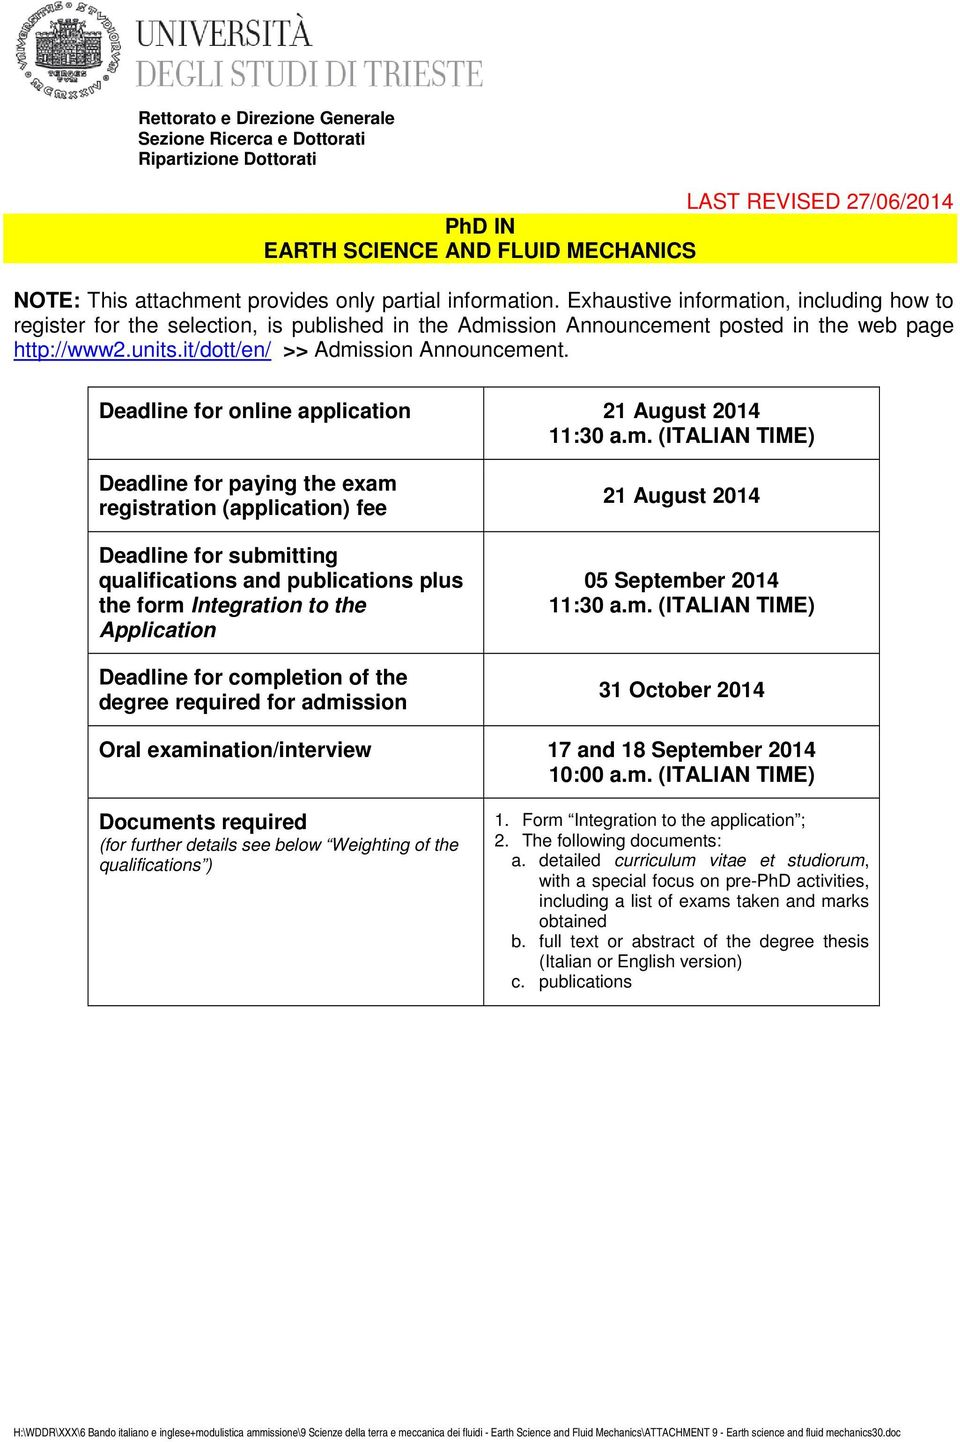 Deadline for online application 21 August 2014 11:30 a.m.